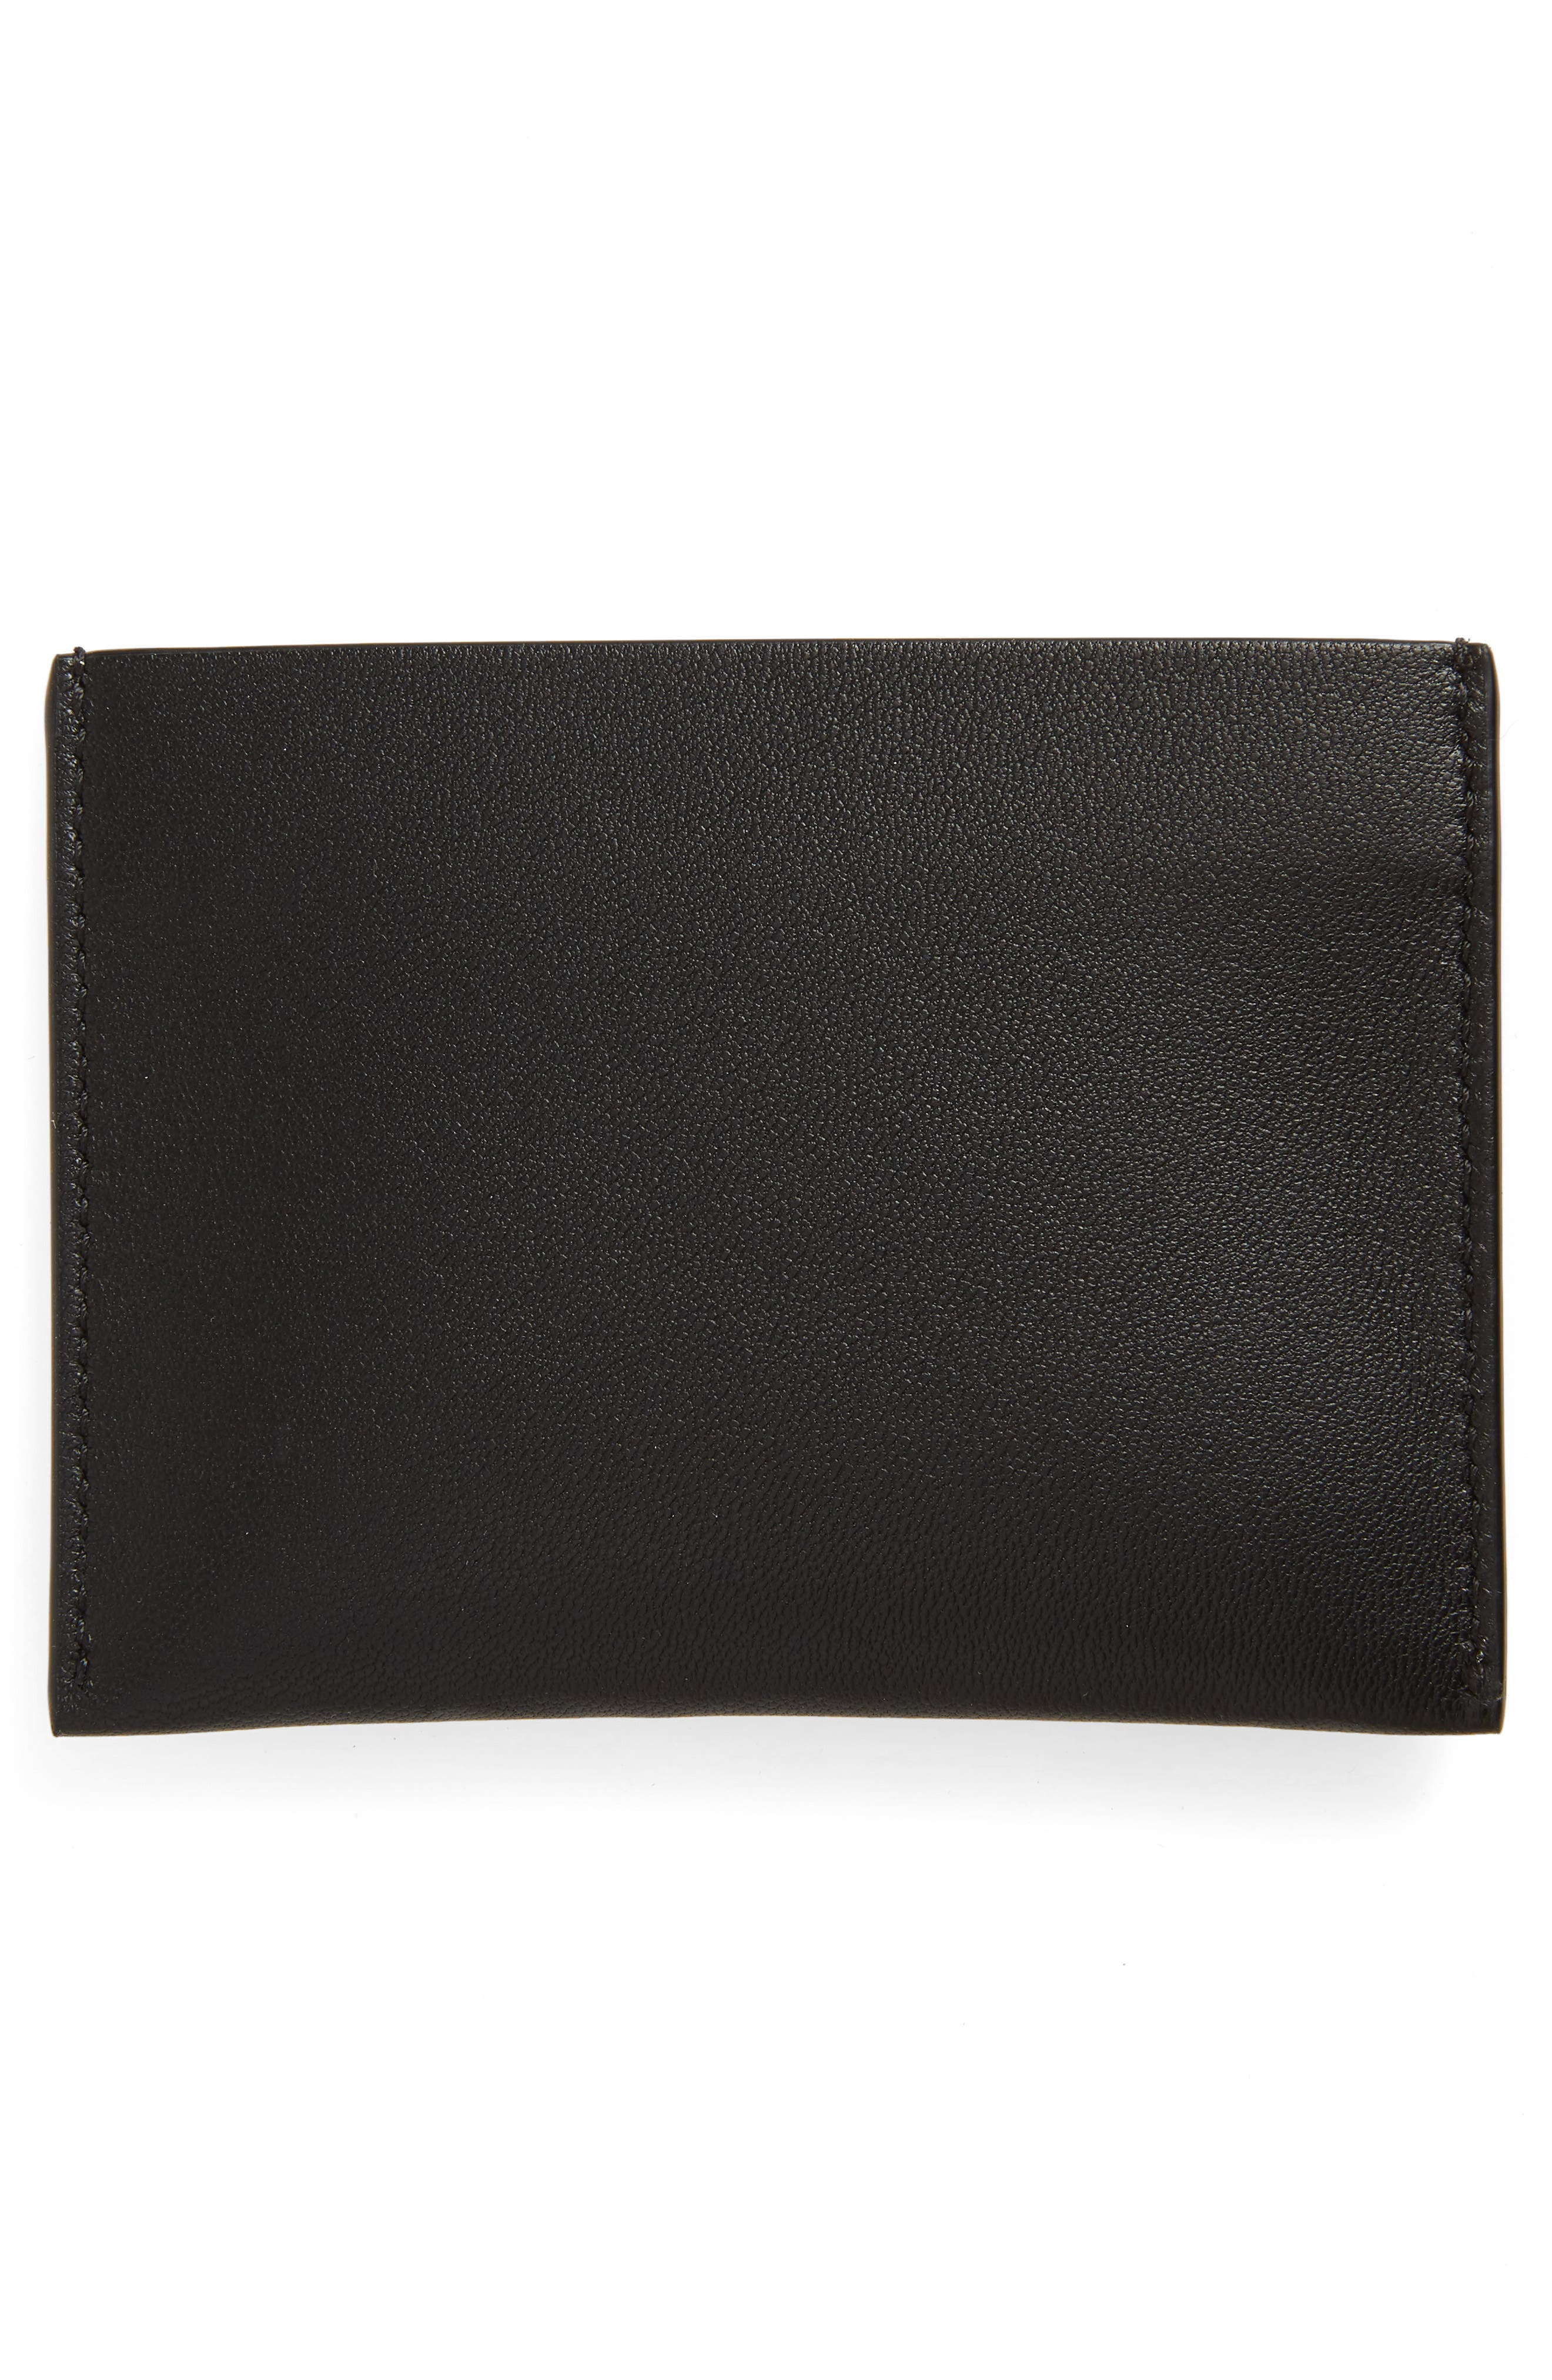 4G Leather Card Holder,                             Alternate thumbnail 2, color,                             006